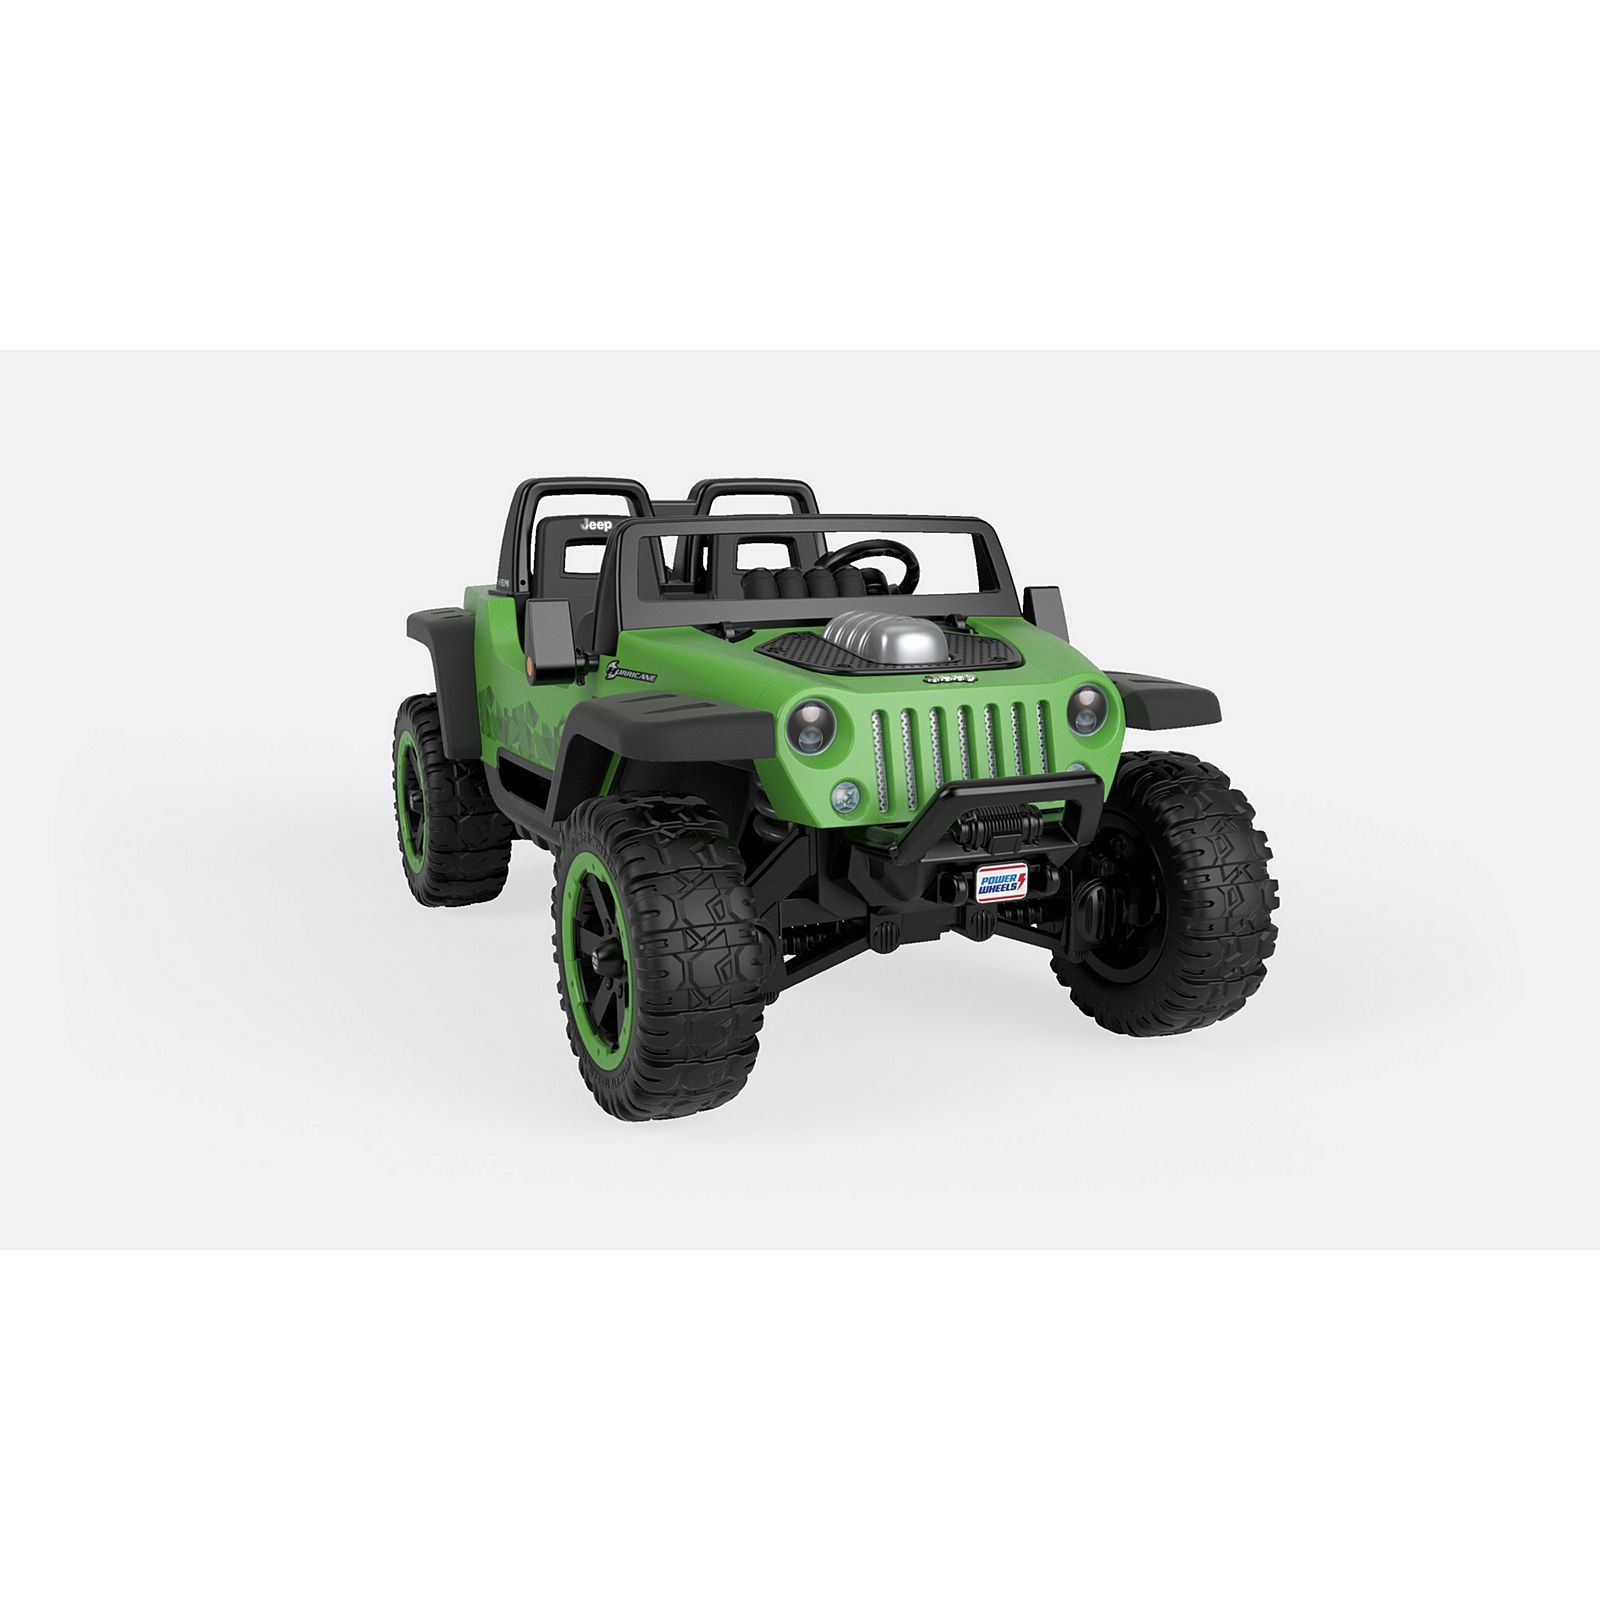 Check Out The Power Wheels Jeep Hurricane Extreme Fdg13 At The